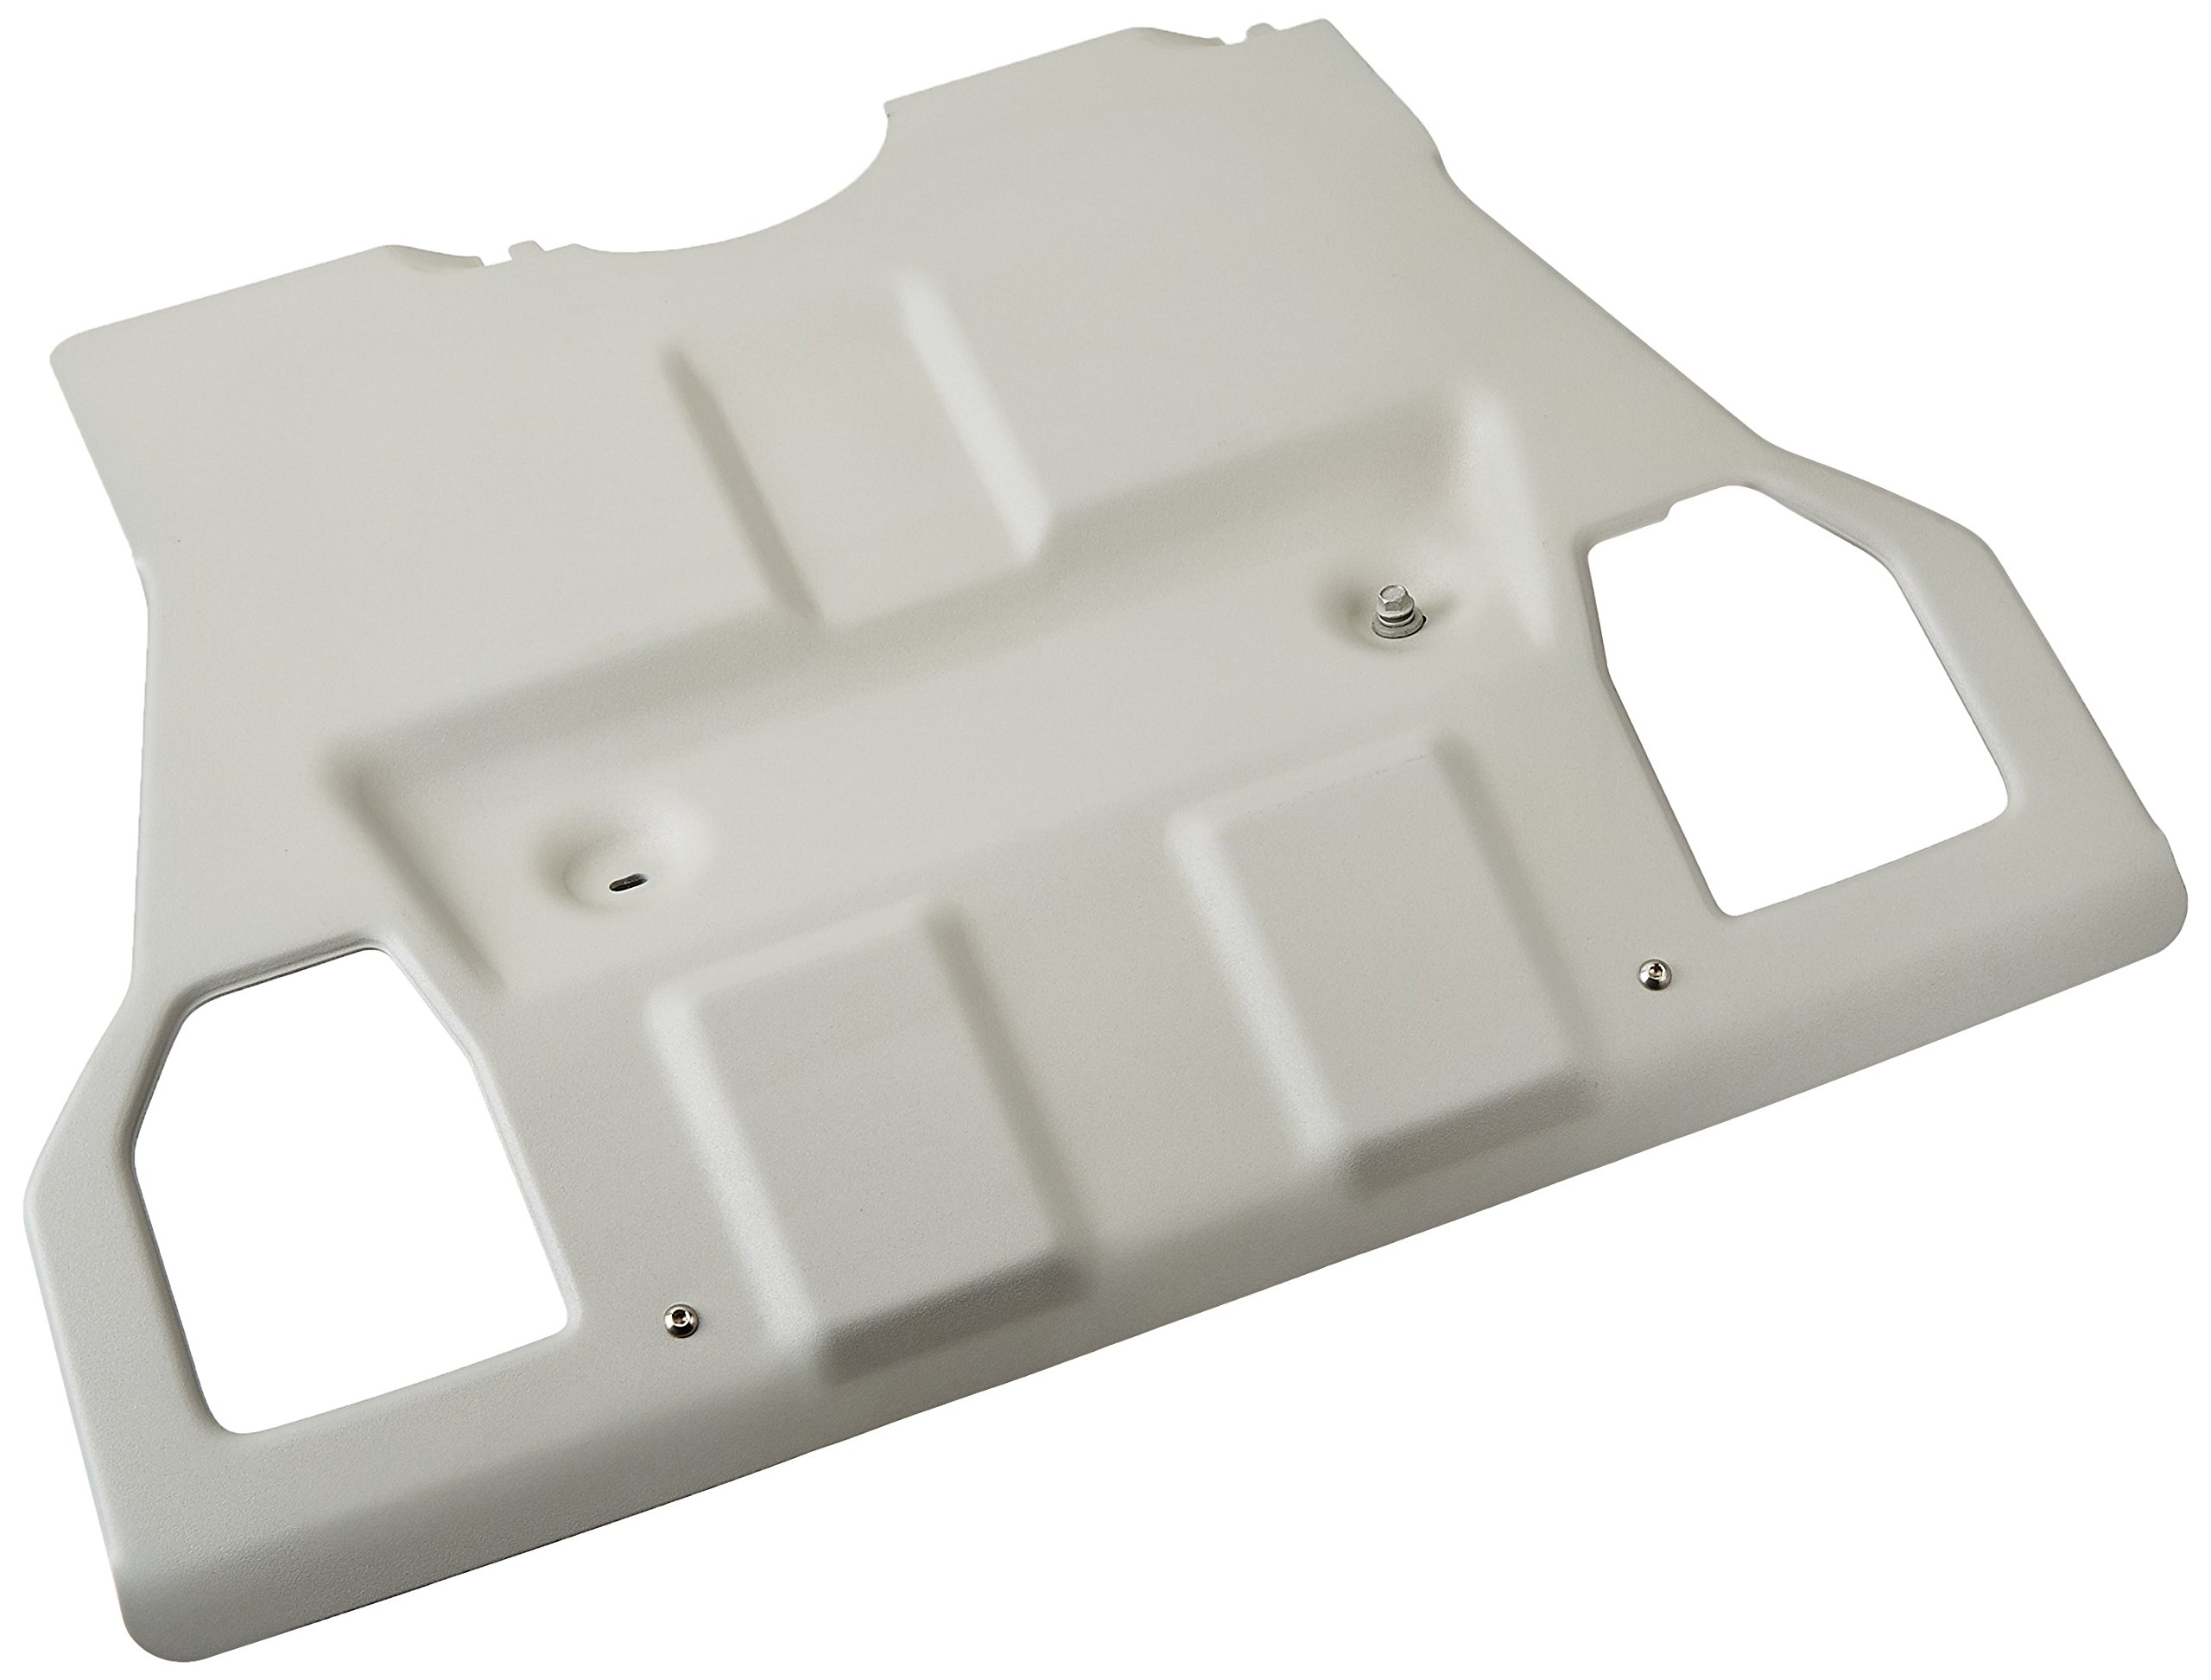 Genuine Toyota Accessories PT212-35075 Front Skid Plate for Select Tacoma Models